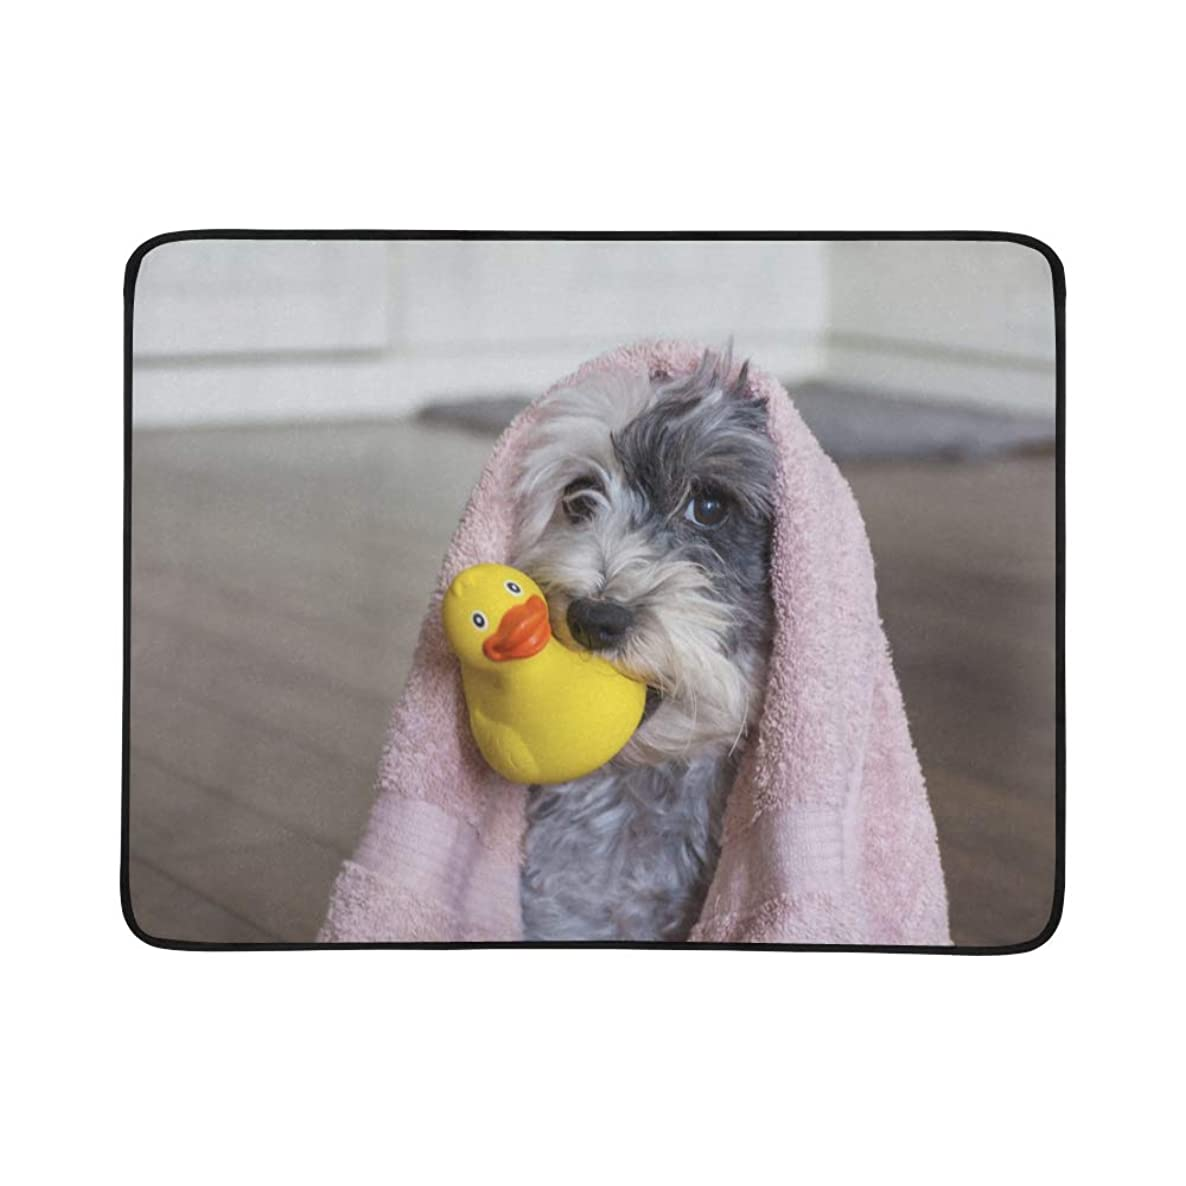 VvxXvx Cute Dog with Yellow Rubber Duck Pattern Portable and Foldable Blanket Mat 60x78 Inch Handy Mat for Camping Picnic Beach Indoor Outdoor Travel